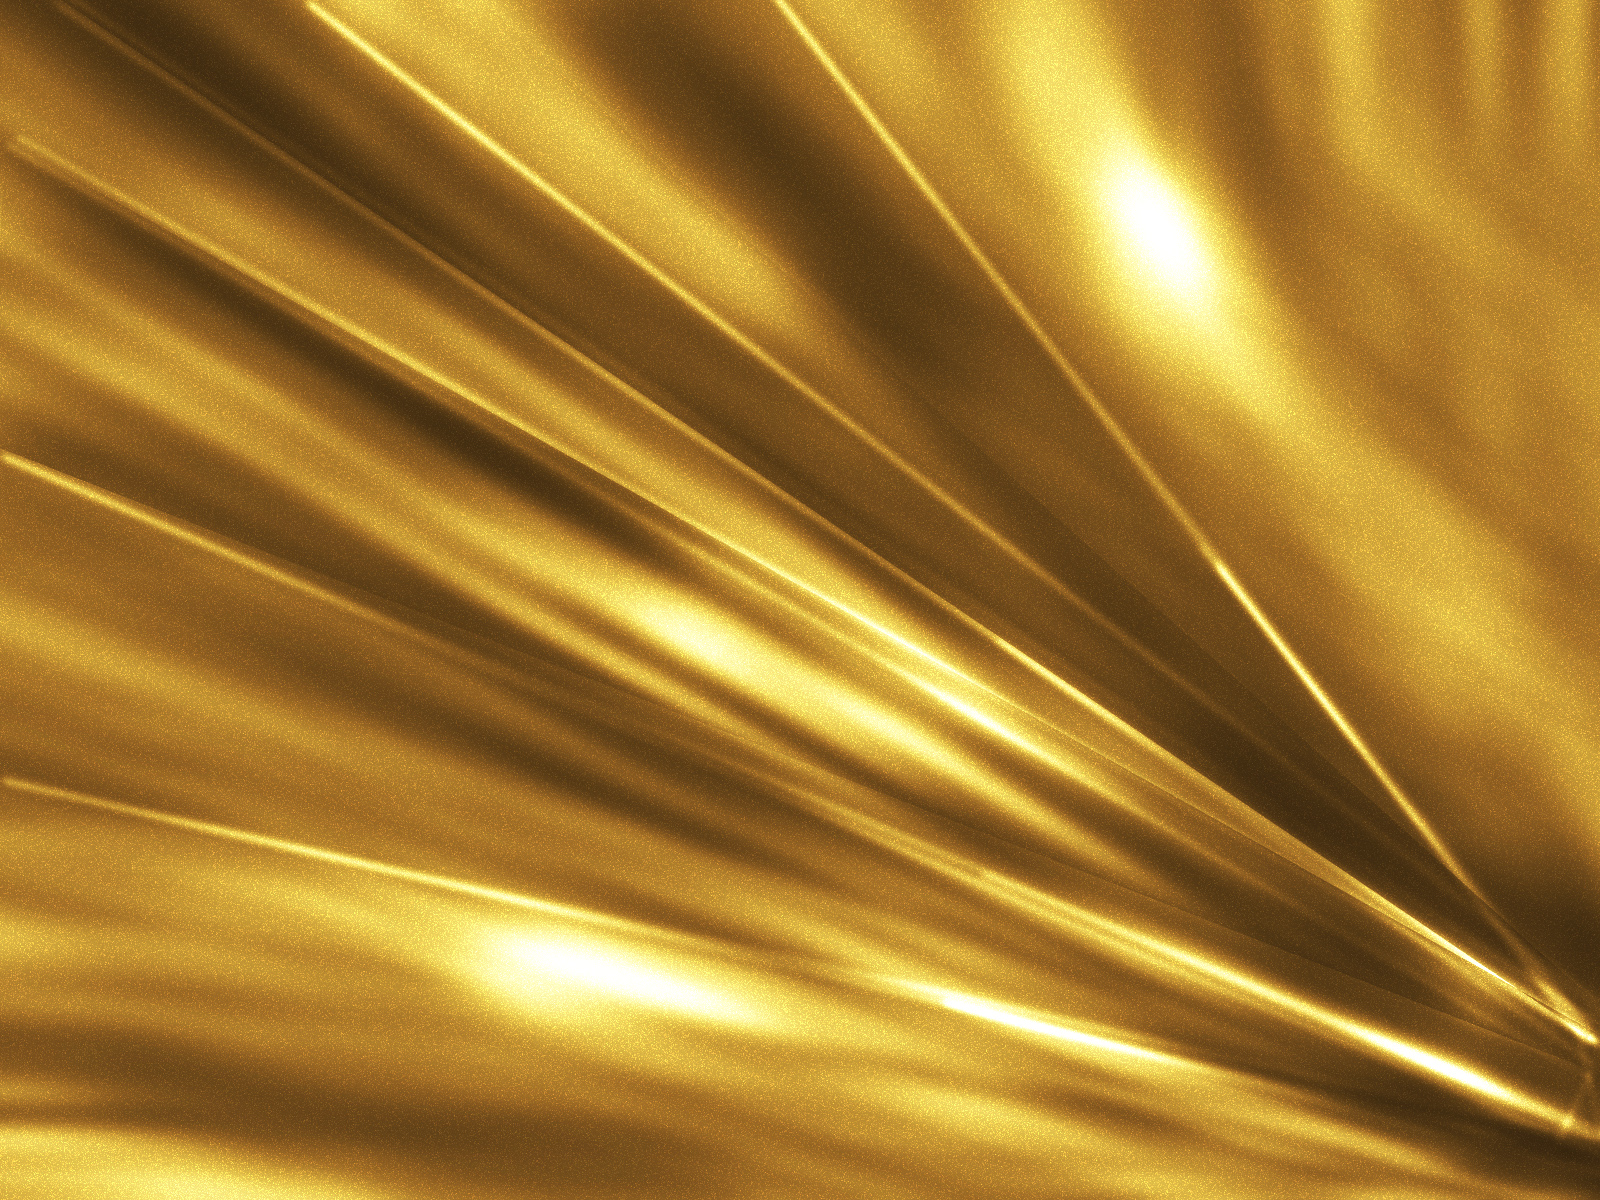 Gold Wallpaper Gold Wallpaper 1600x1200